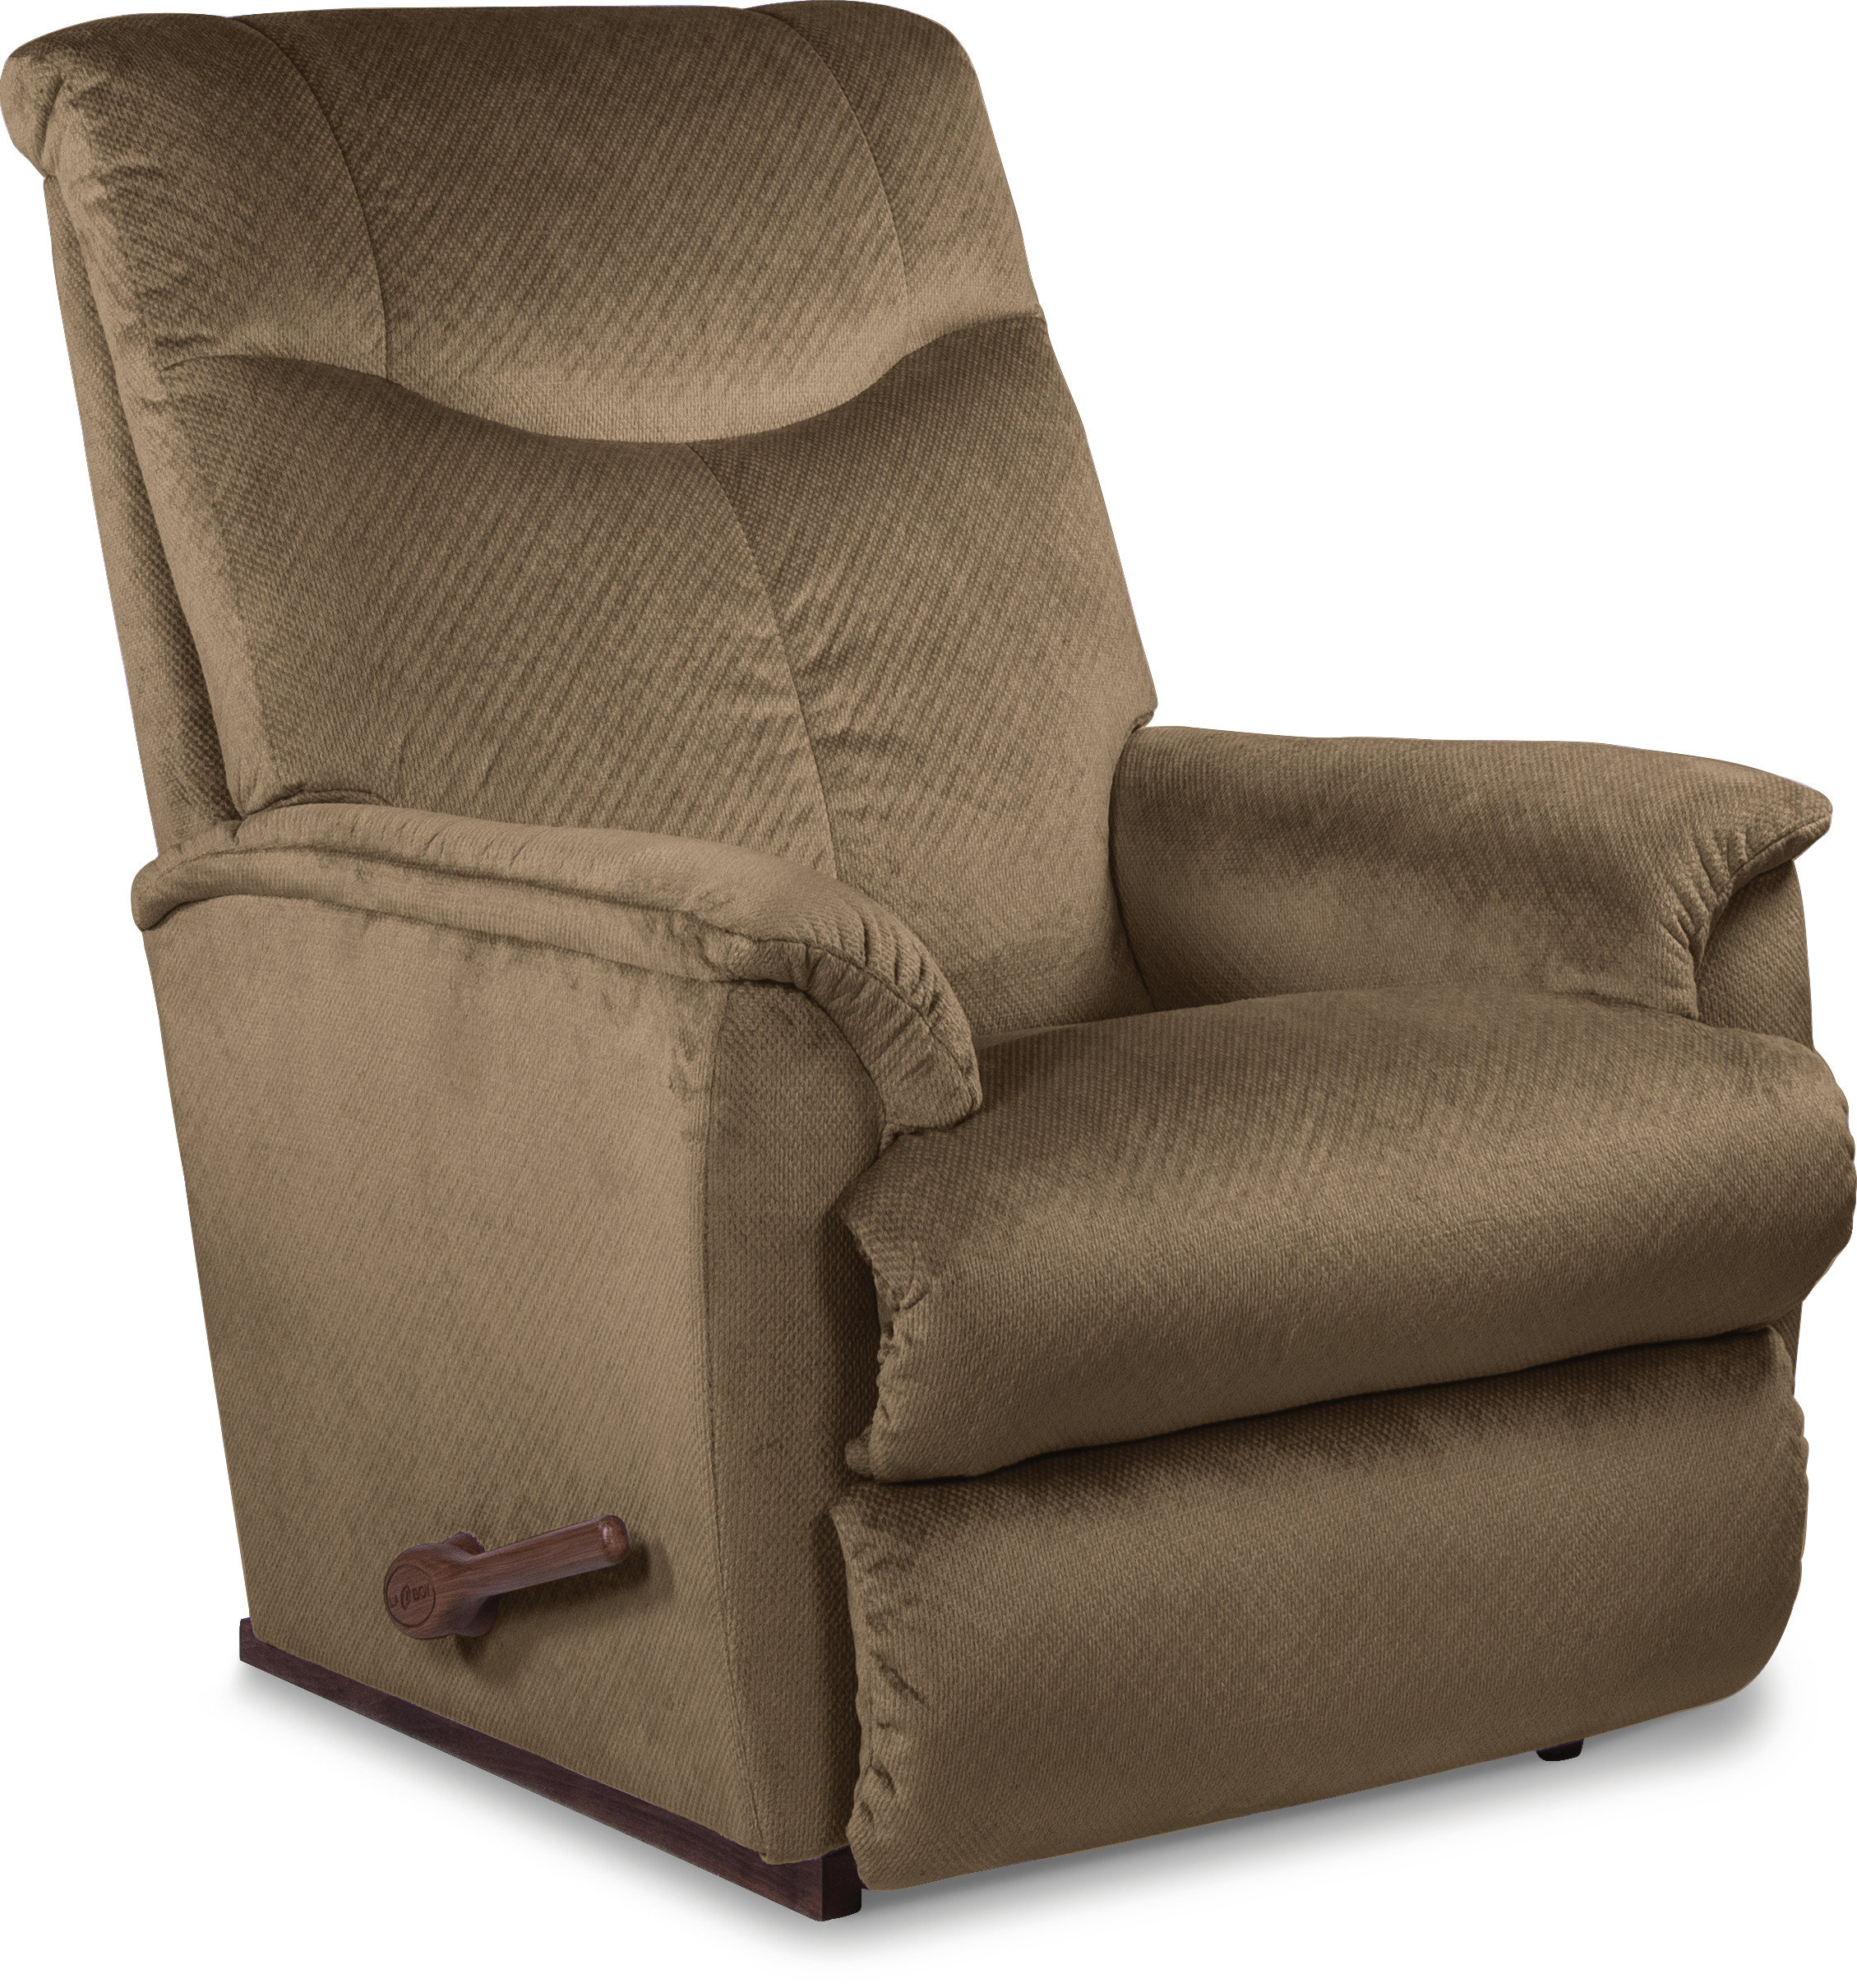 La Z Boy Hunter Rocker Recliner & Reviews | Wayfair Regarding Sheldon Oversized Sofa Chairs (Photo 12 of 20)